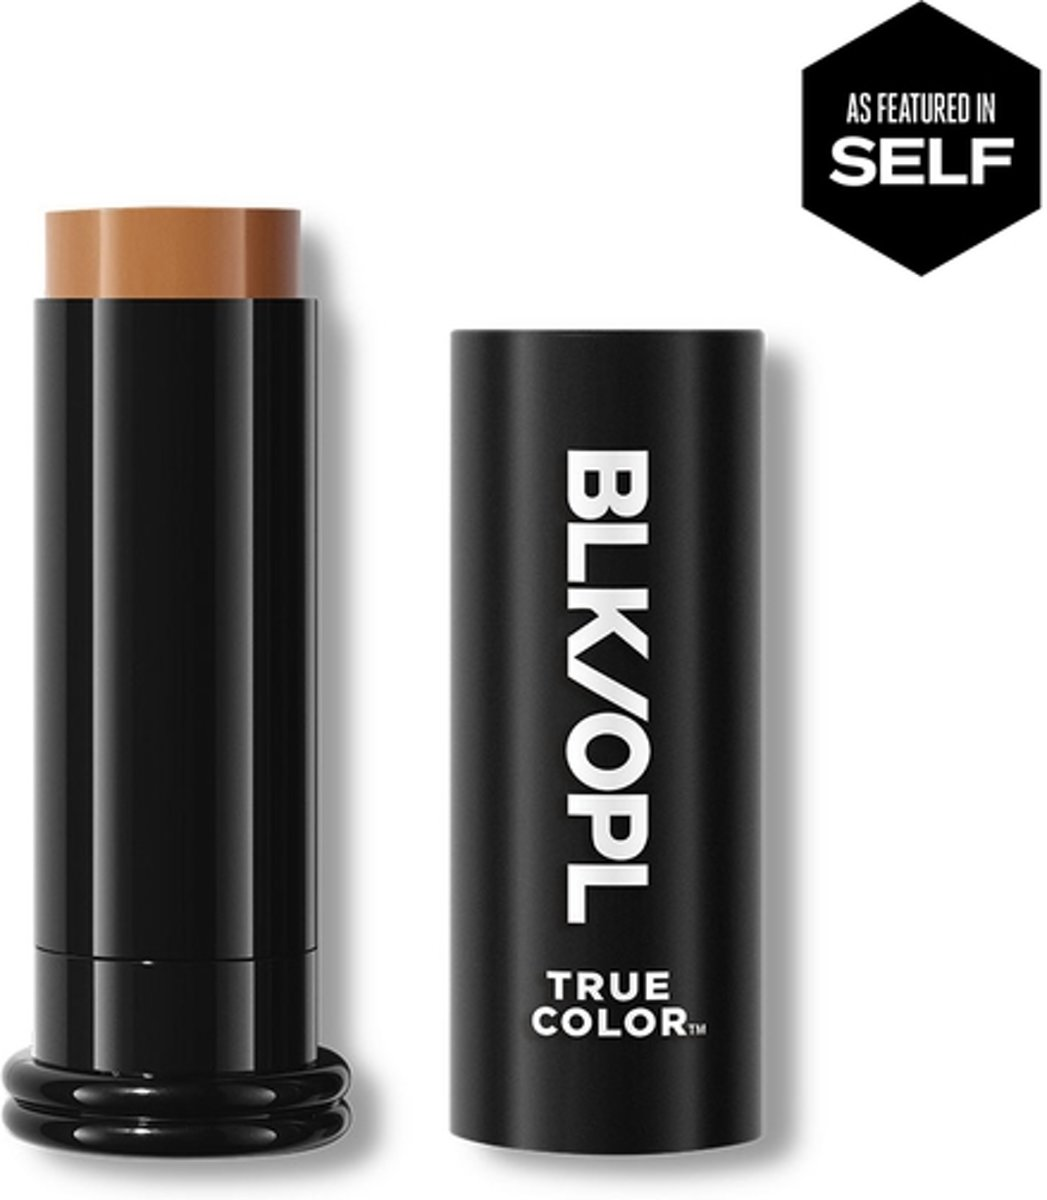 Black Opal True Color Skin Perfecting Stick Foundation SPF15